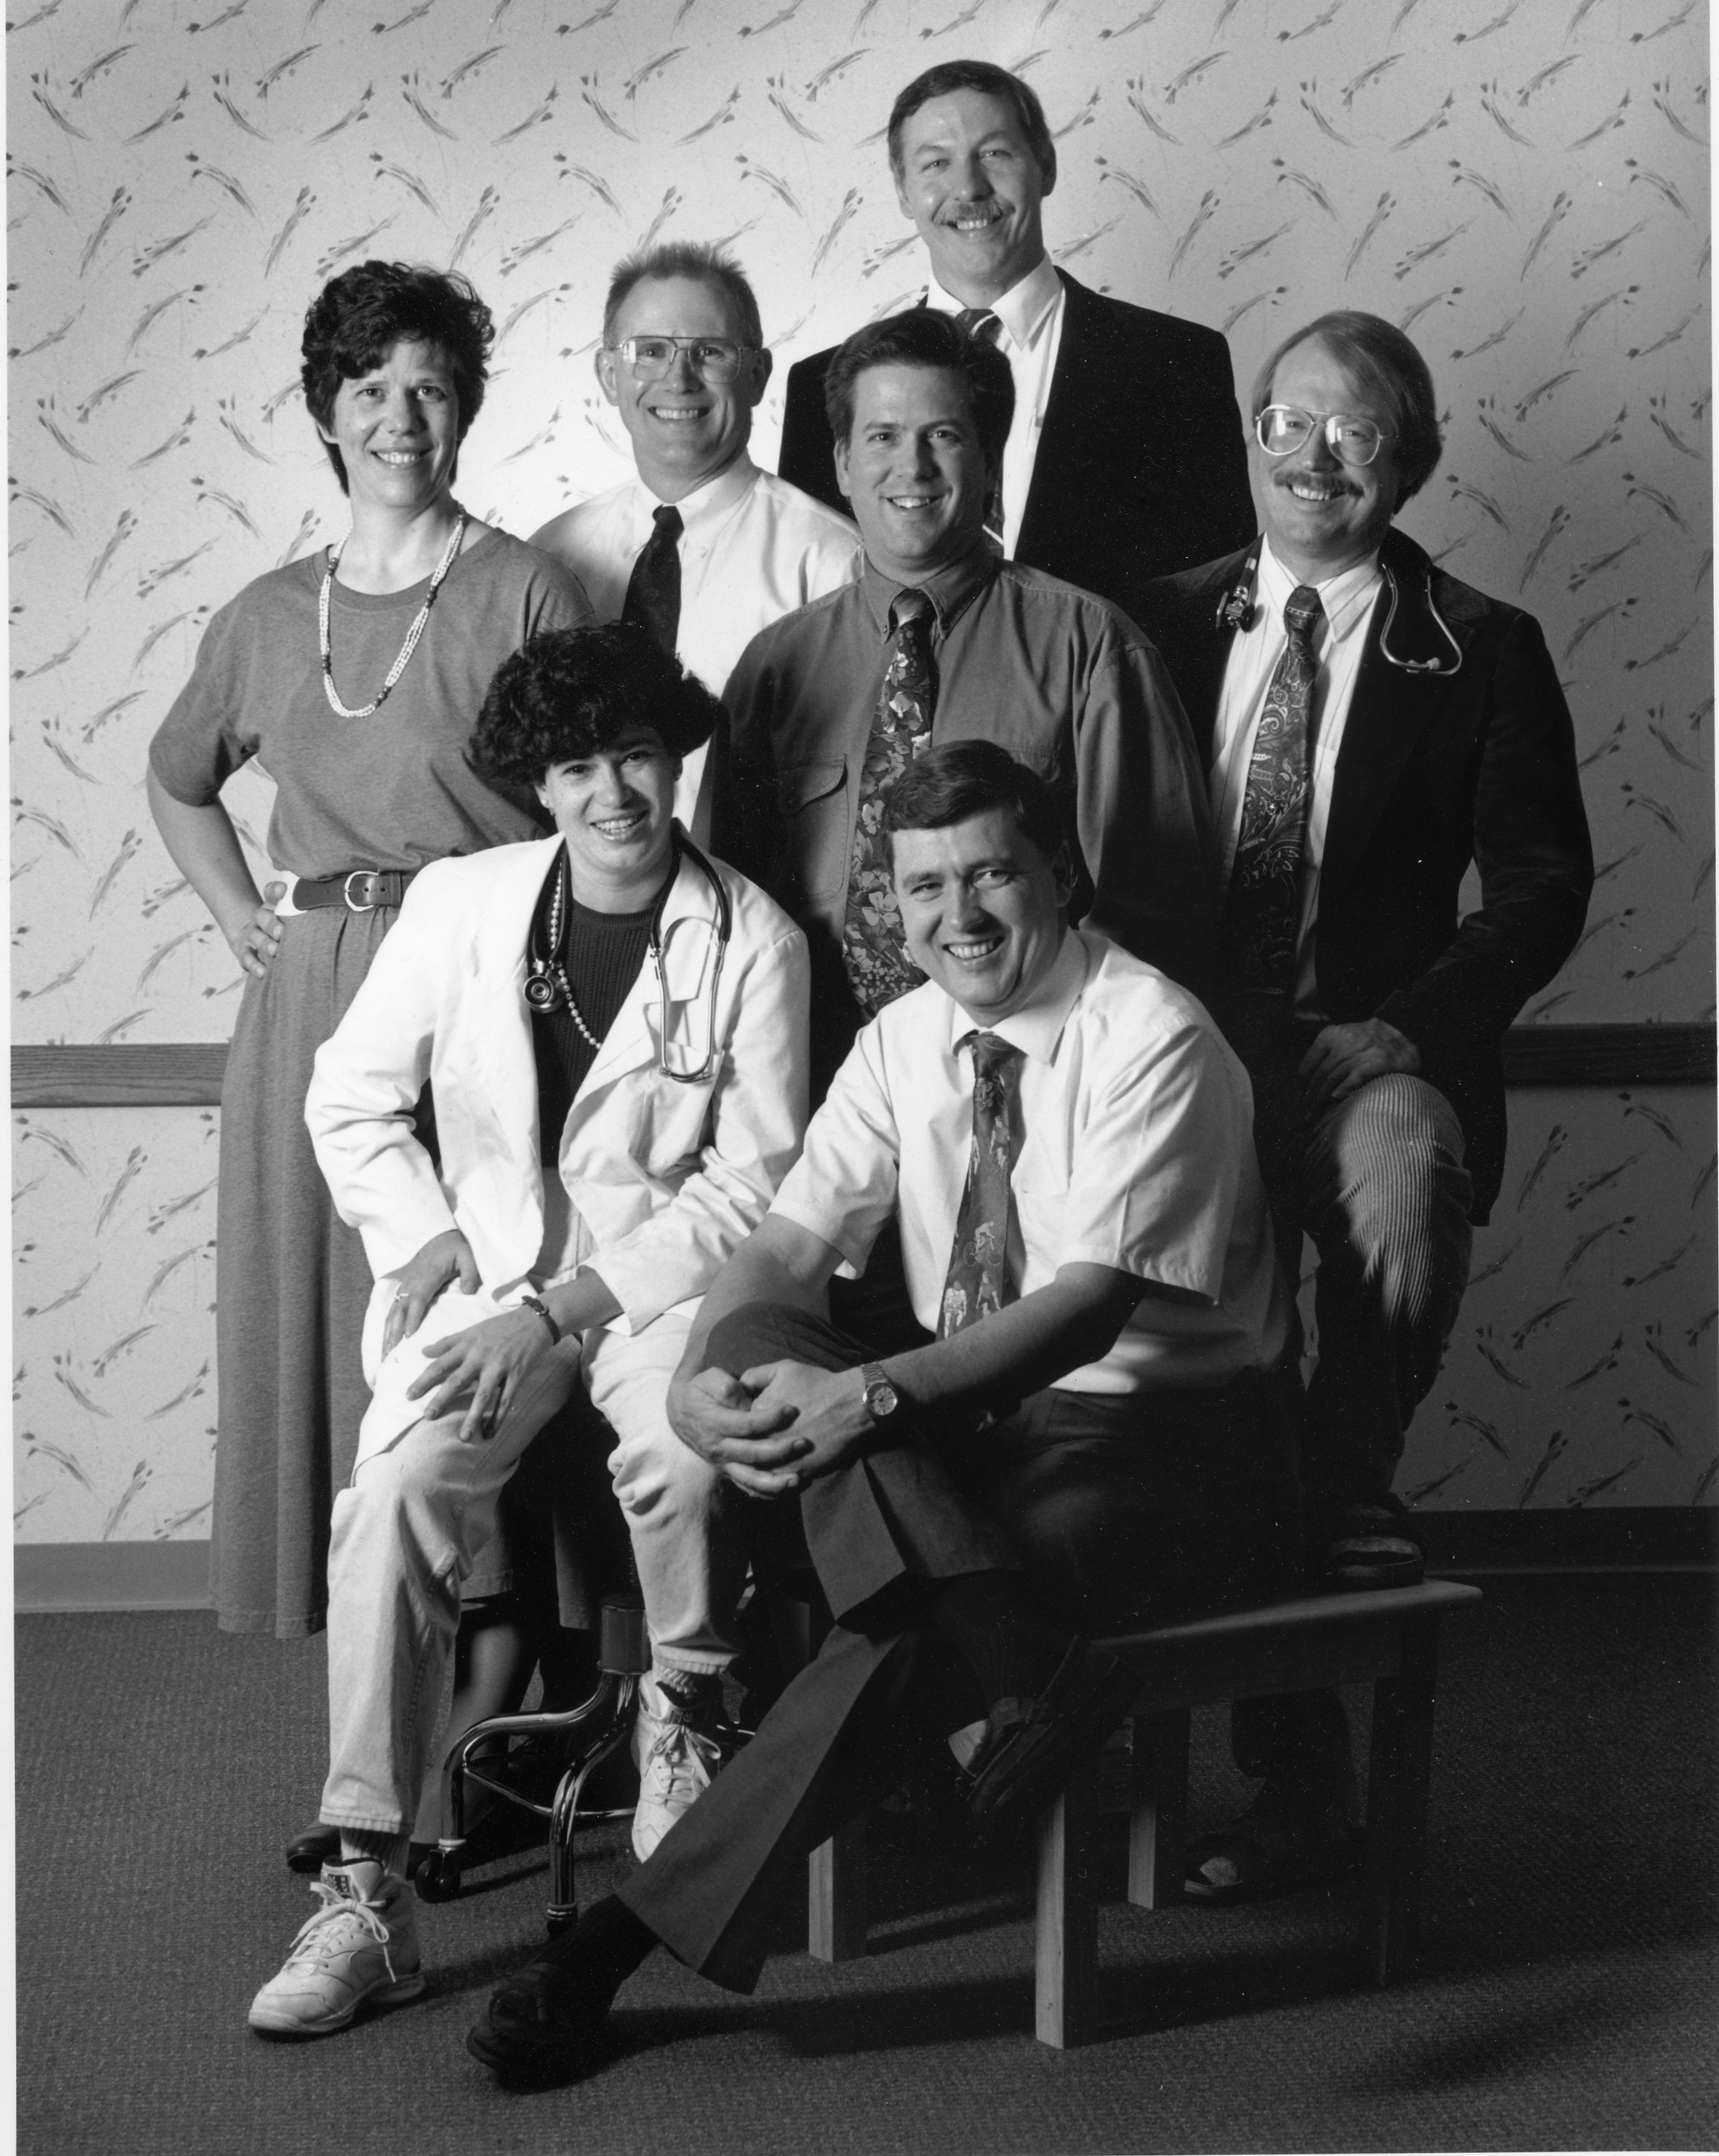 A black and white photo featuring providers from South Hill Family Medicine including Dr. Nancy Grubb (left), and Dr. Edward Pullen (to her right), Dr. Donald Sinden (front) and Curtis Allen, PA (right)